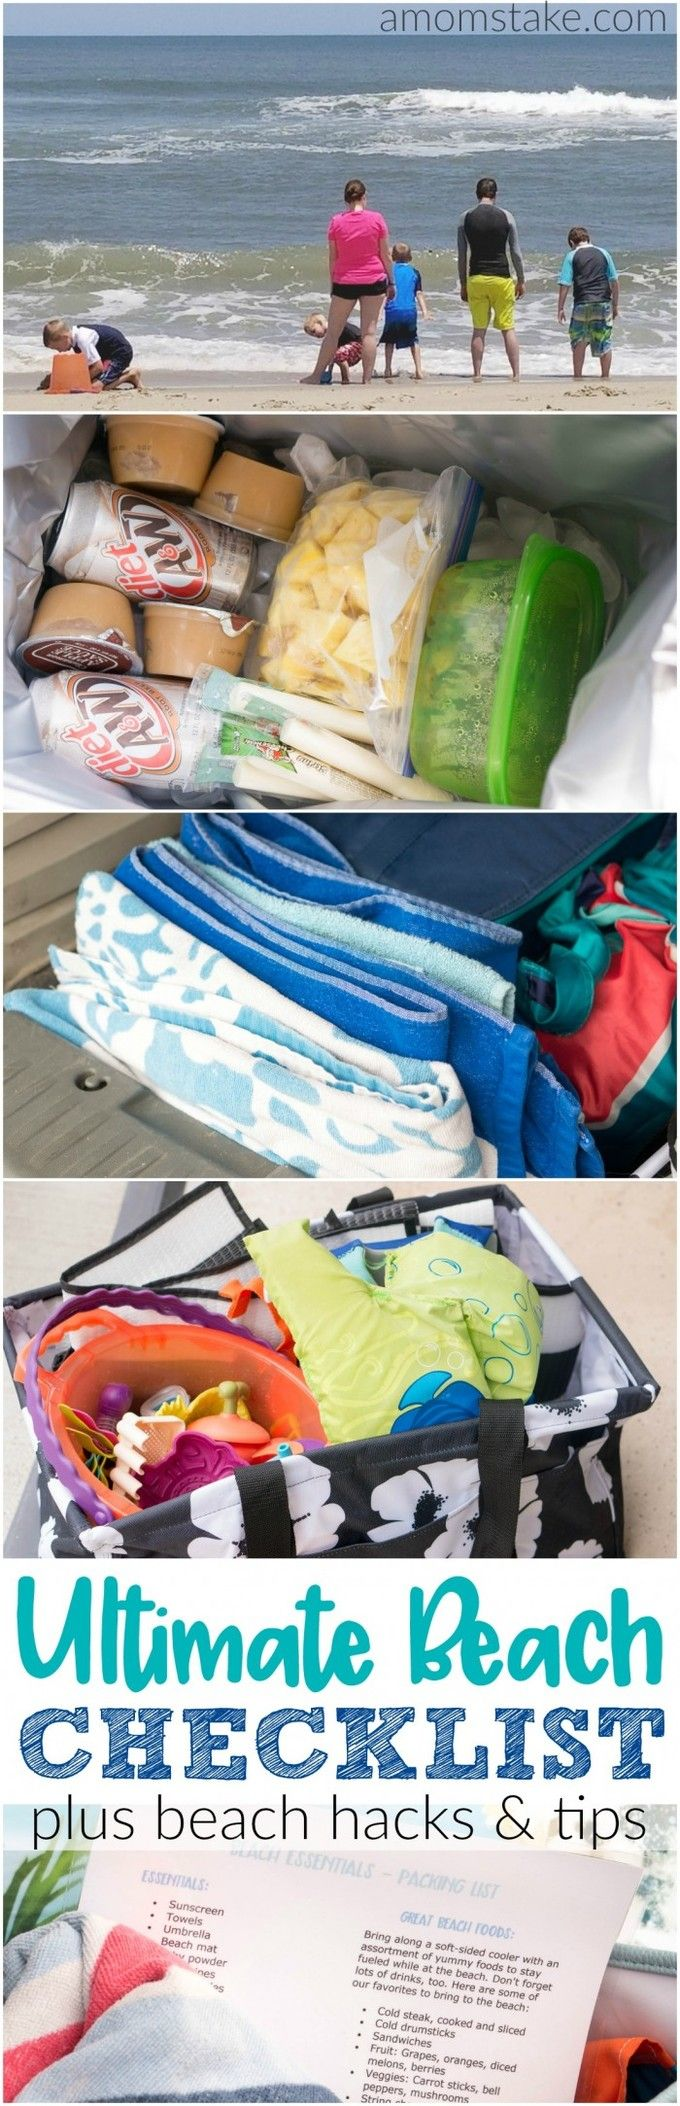 The ultimate guide to get you ready for the beach! What to pack checklist to make your packing go quick and easy plus awesome tips to help you get your car organized and make beach clean-up easier!